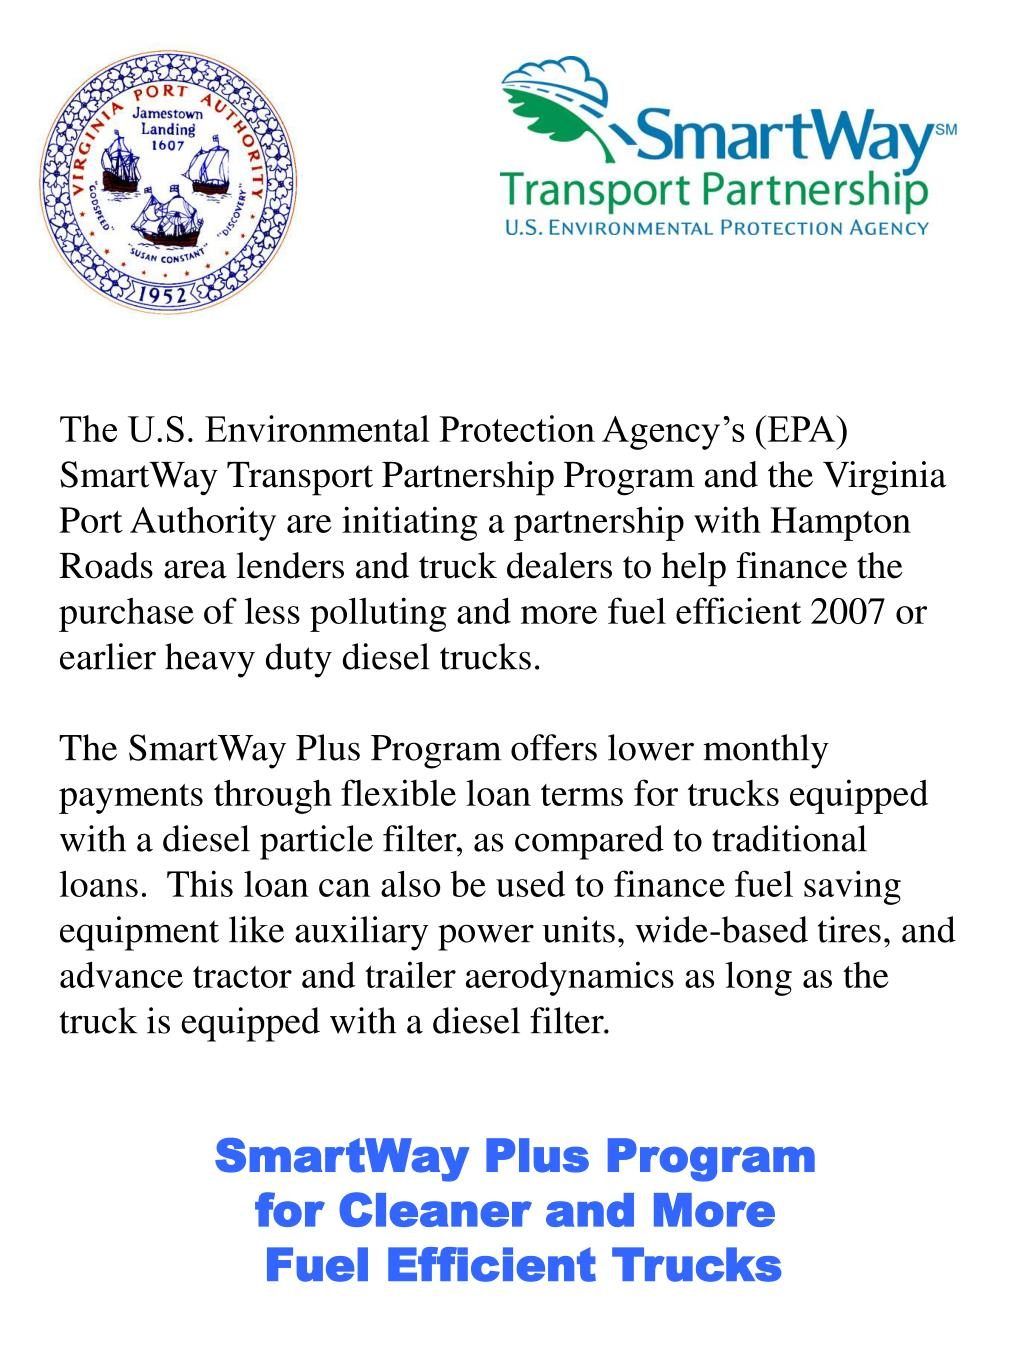 The U.S. Environmental Protection Agency's (EPA) SmartWay Transport Partnership Program and the Virginia Port Authority are initiating a partnership with Hampton Roads area lenders and truck dealers to help finance the purchase of less polluting and more fuel efficient 2007 or earlier heavy duty diesel trucks.